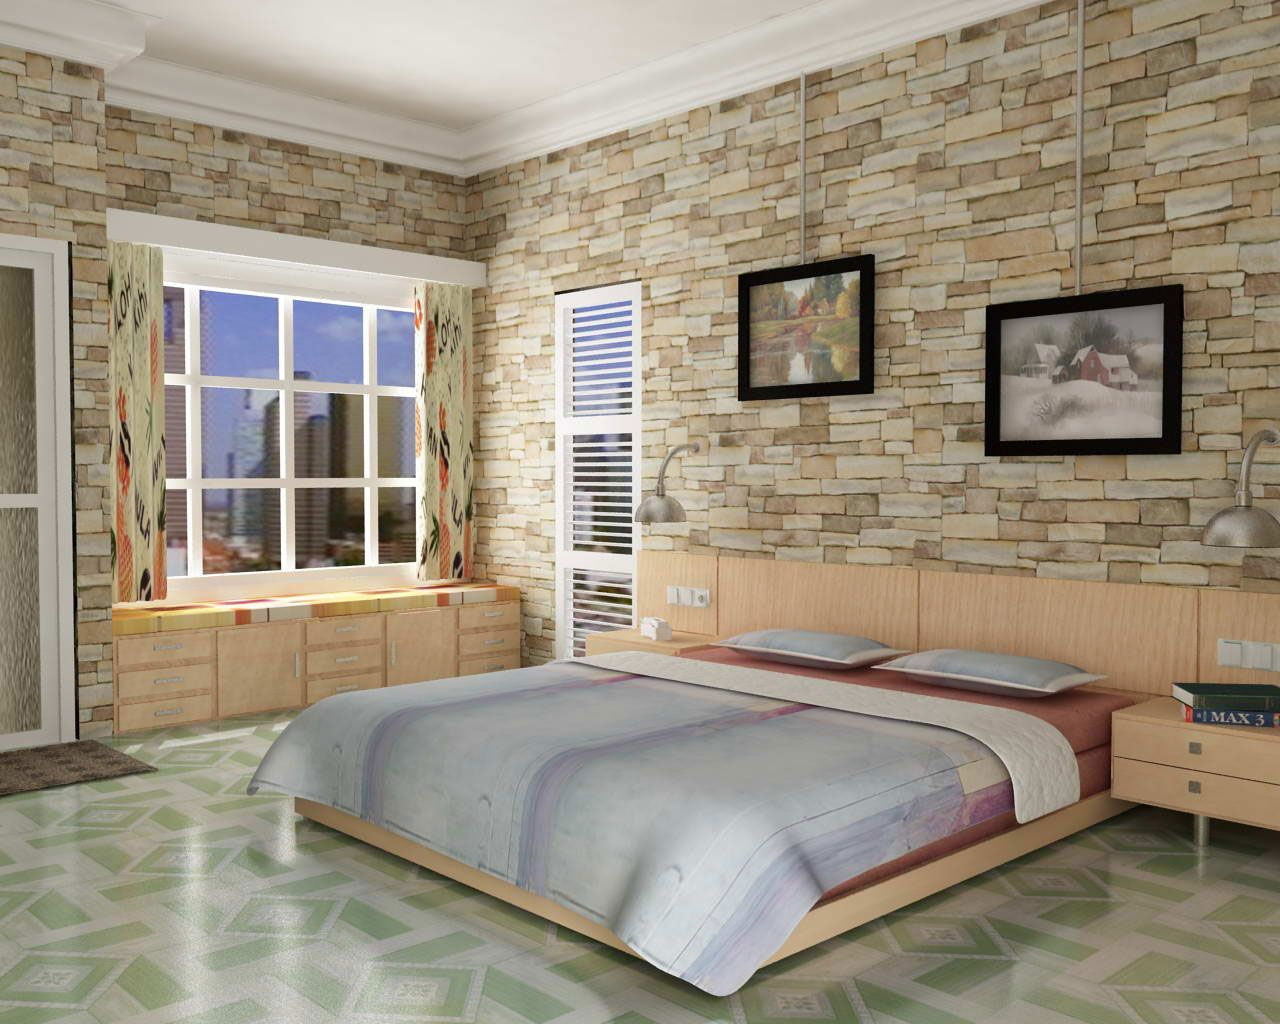 Bedroom, New Model Bedroom Design With Creative Bright Brown Wood Bed Frame  On Combined Stylish Red Bed Sheet And Beautiful Bright Brown Wood Nightu2026 Part 42